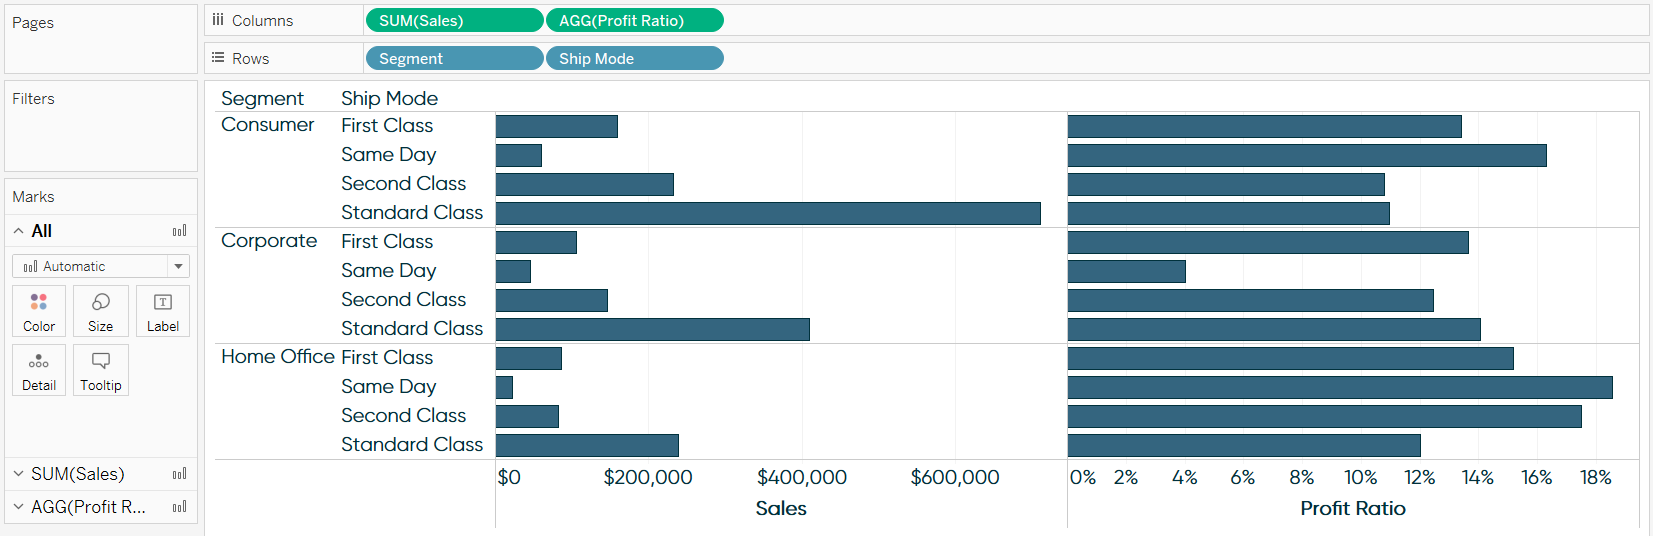 Tableau Sales and Profit Ratio by Segment and Ship Mode